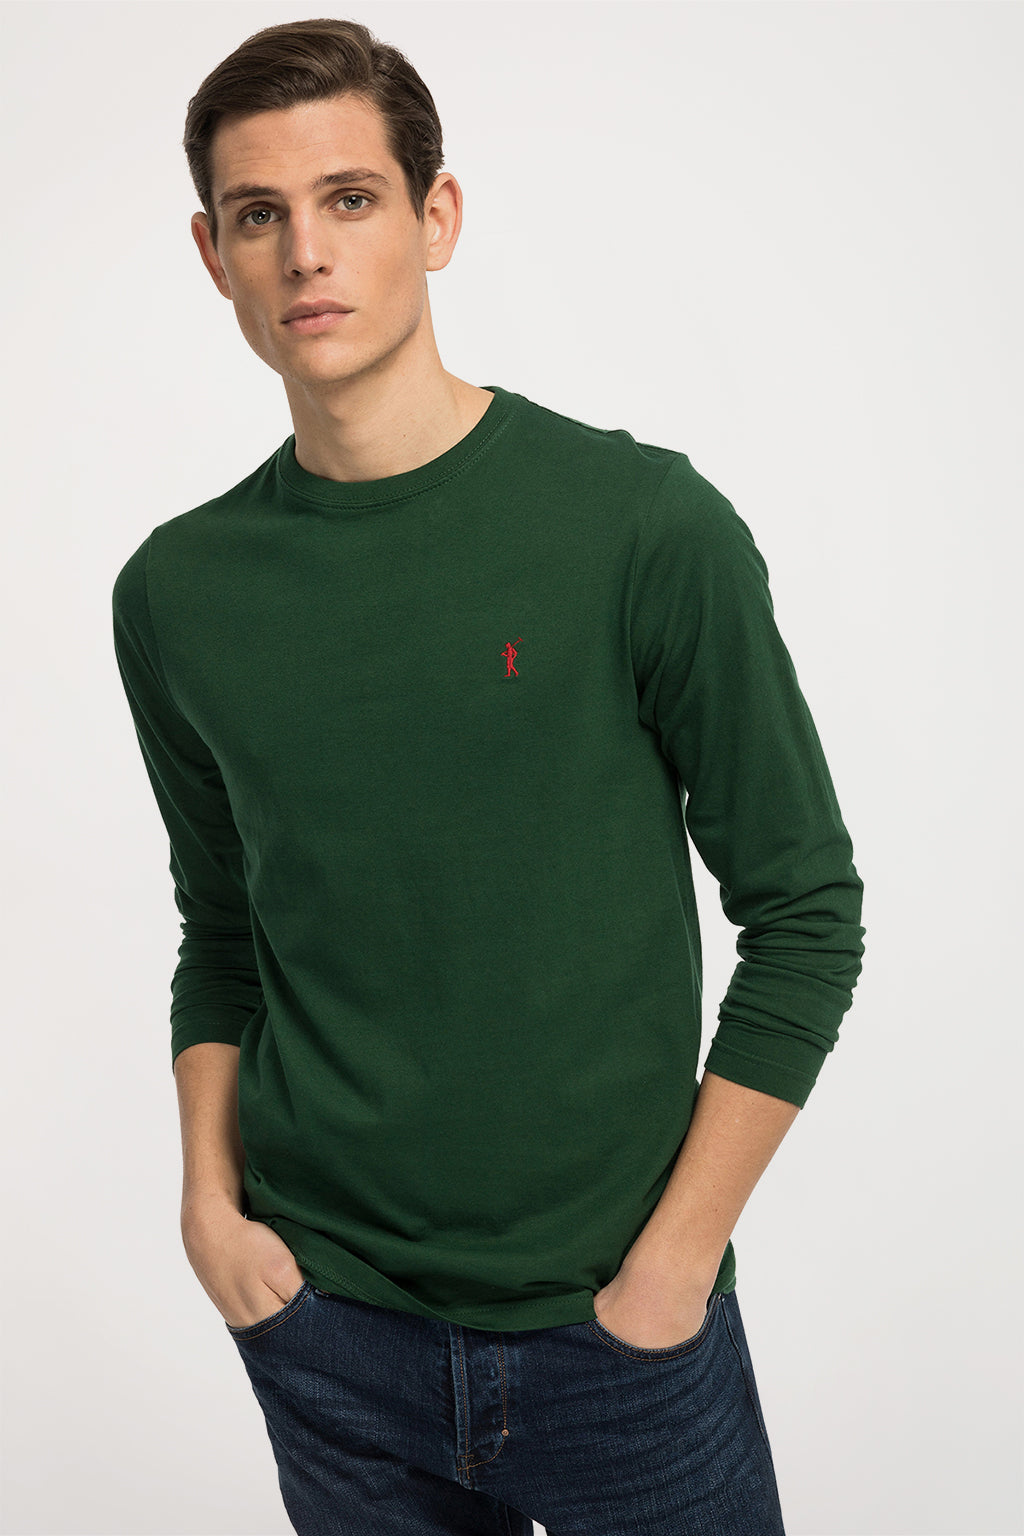 Green long sleeve tee with embroidered logo